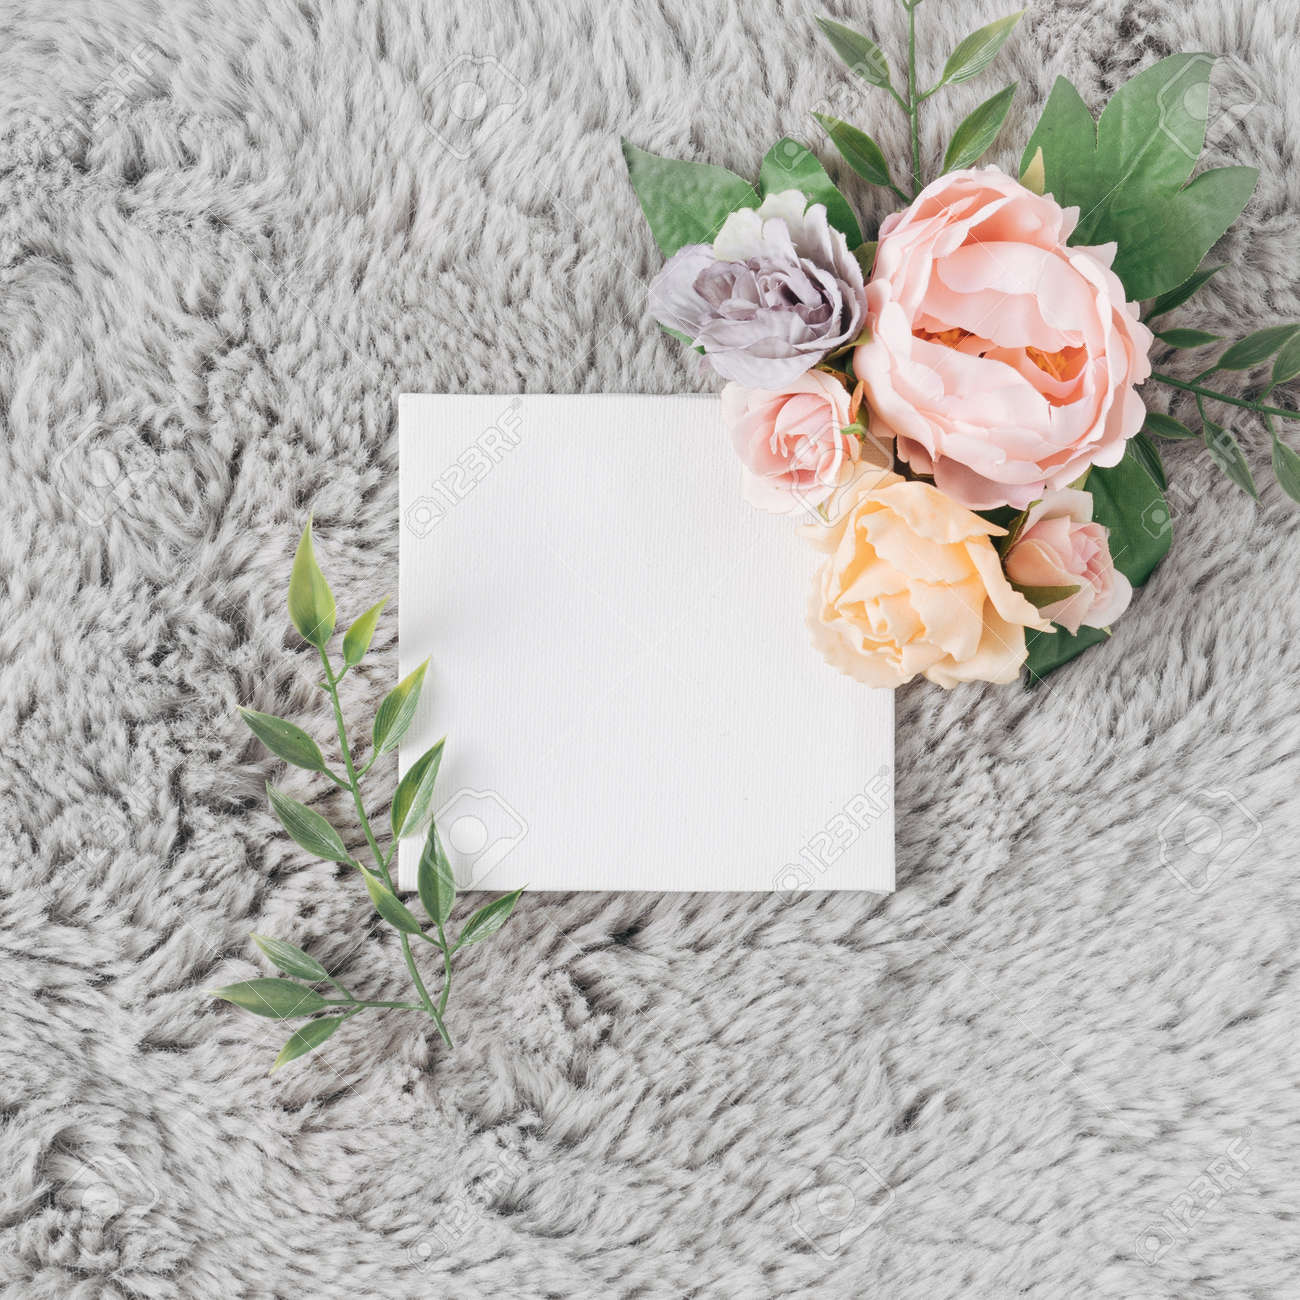 Fur background with Spring or Summer flowers. Minimal nature love concept. Mother's day Or Valentines idea. - 163287270